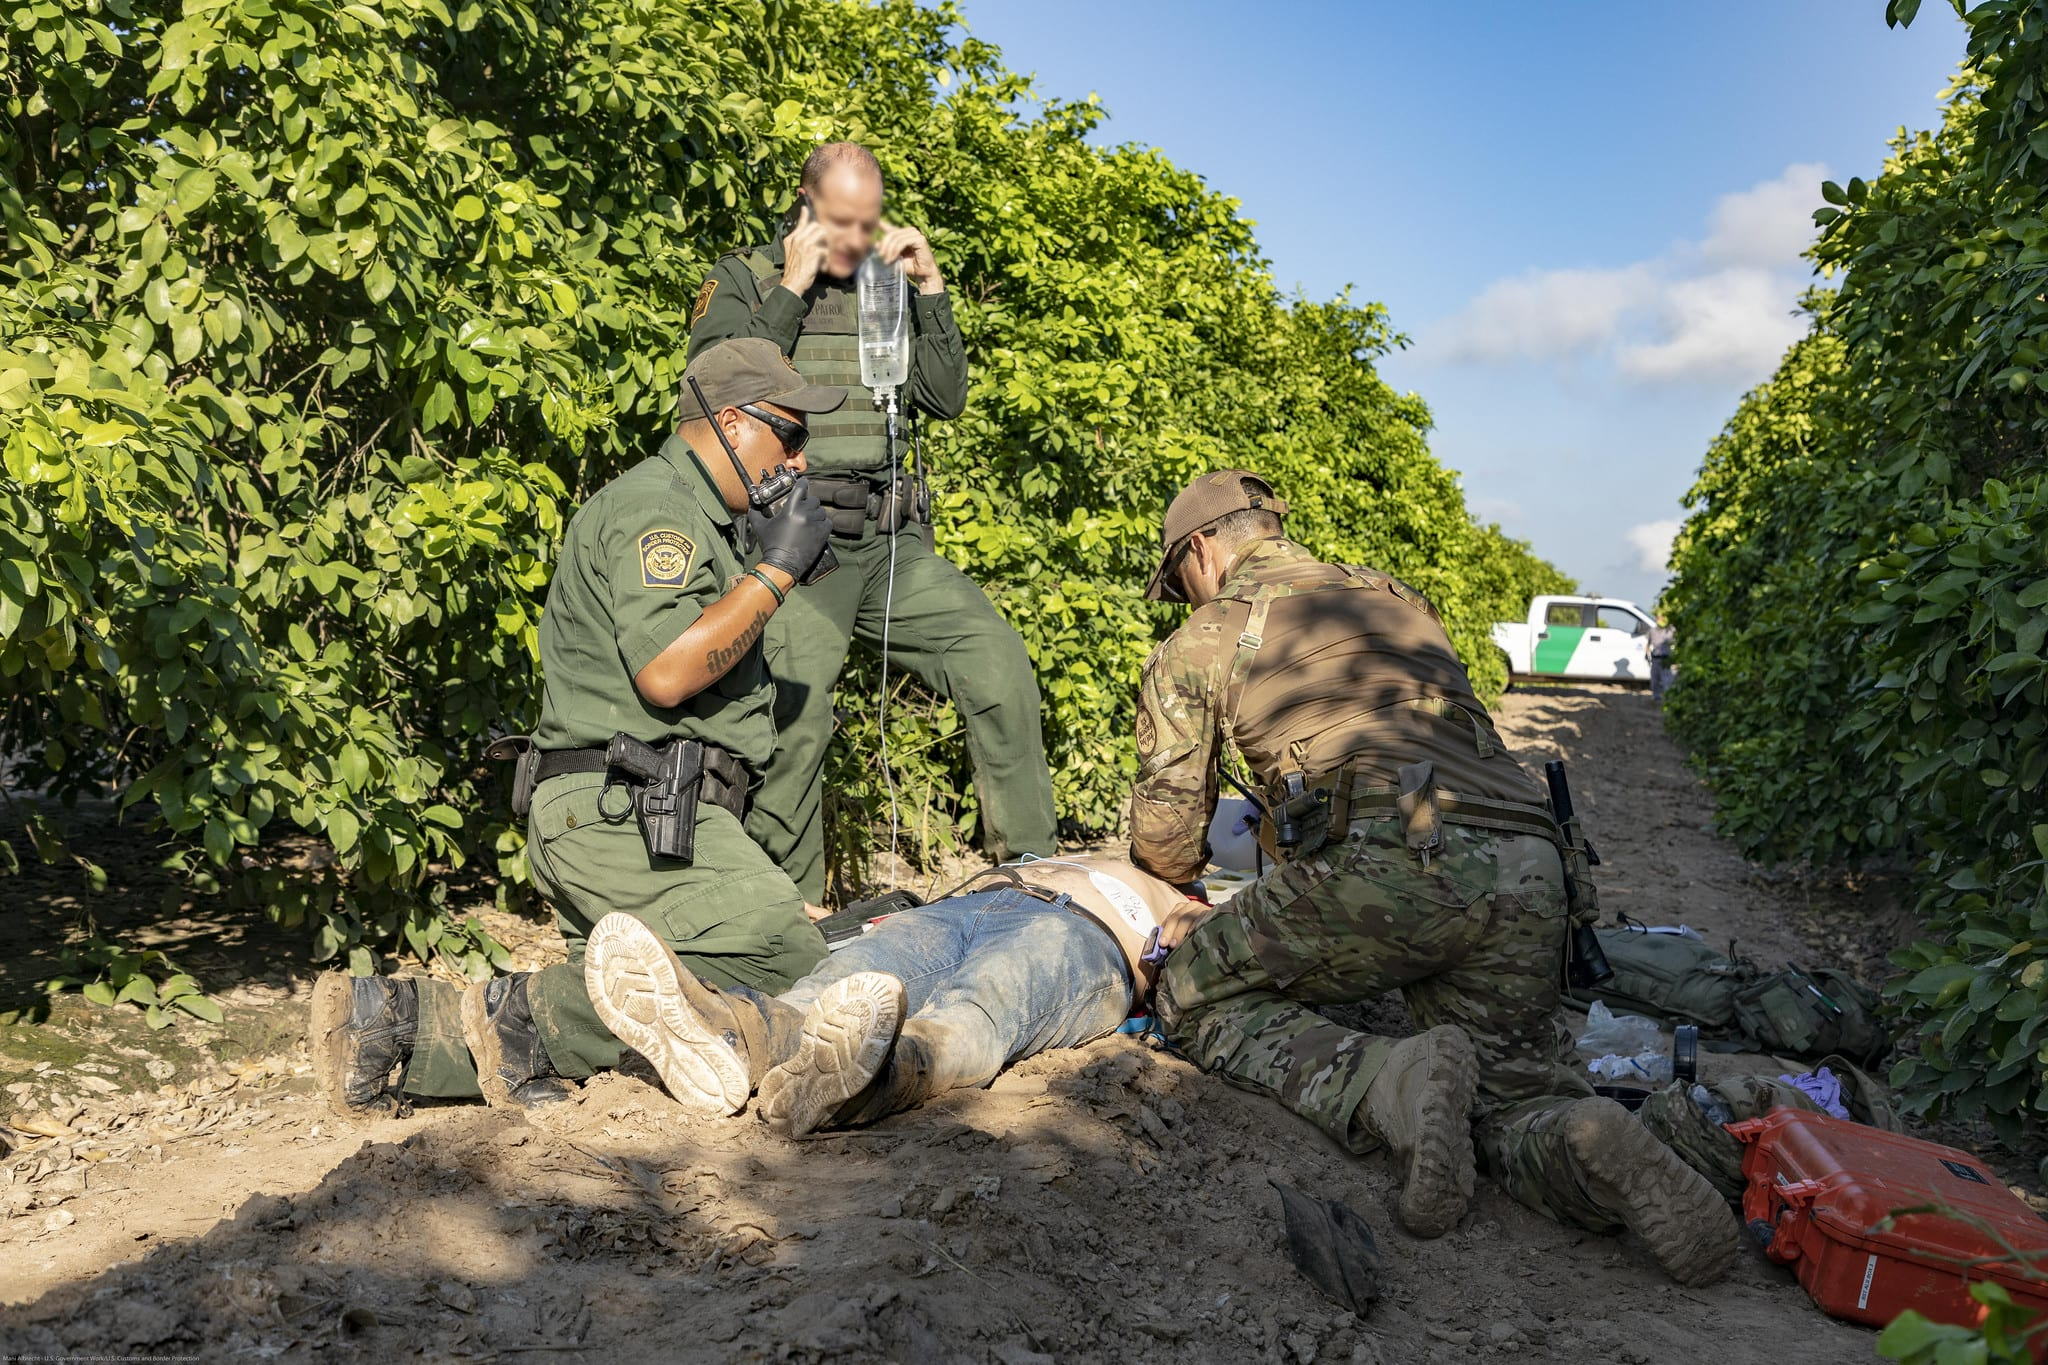 U.S. Border Patrol agents give medical aid to a Mexican national